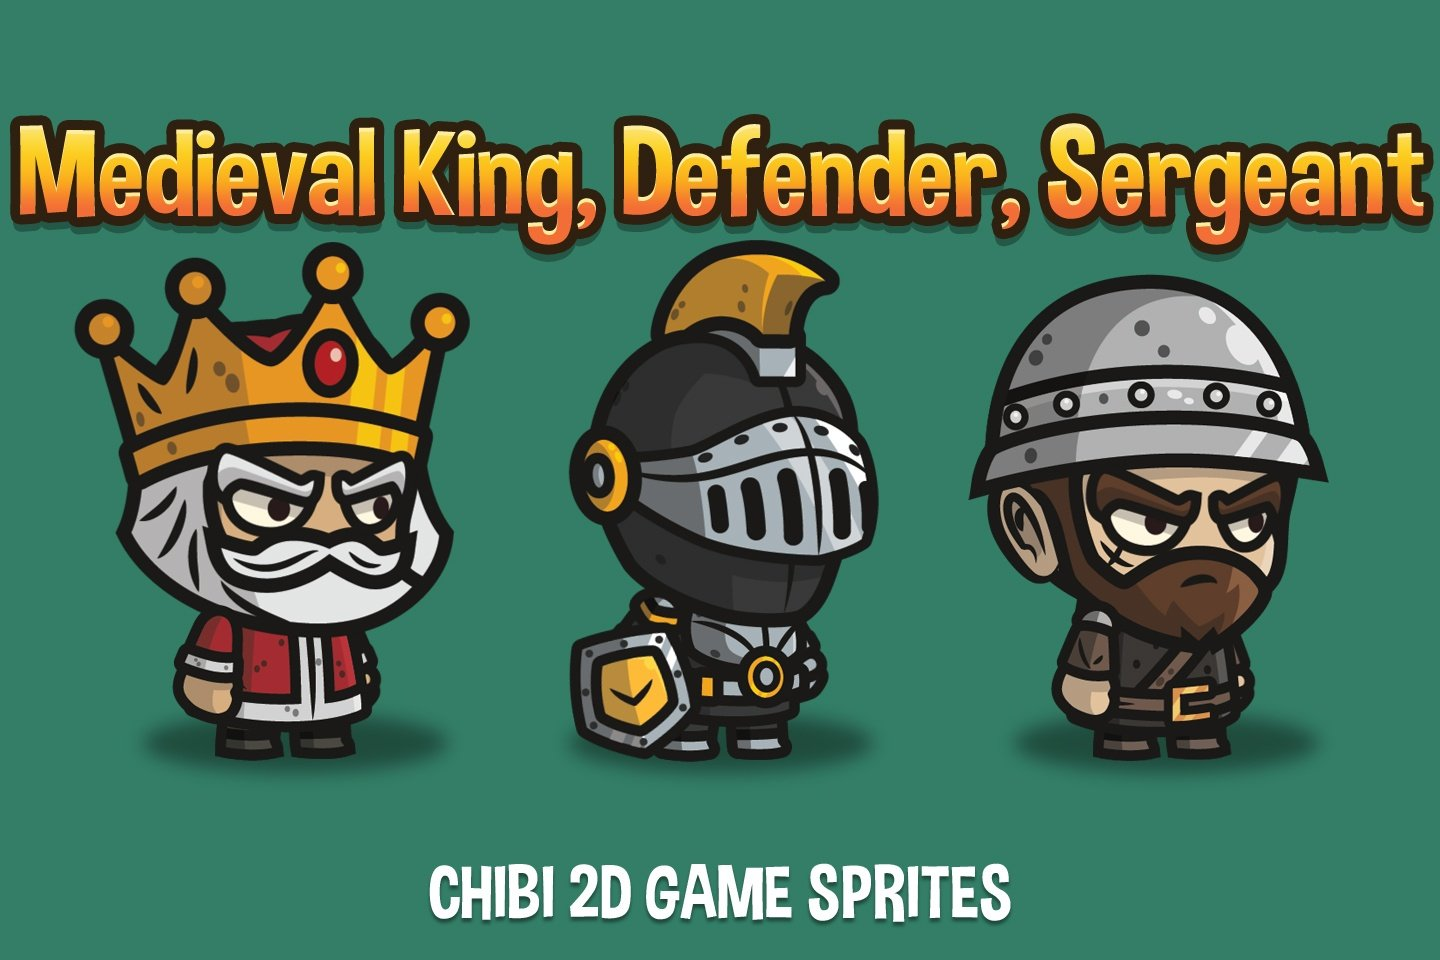 Medieval King, Defender and Sergeant Chibi 2D Game Sprites